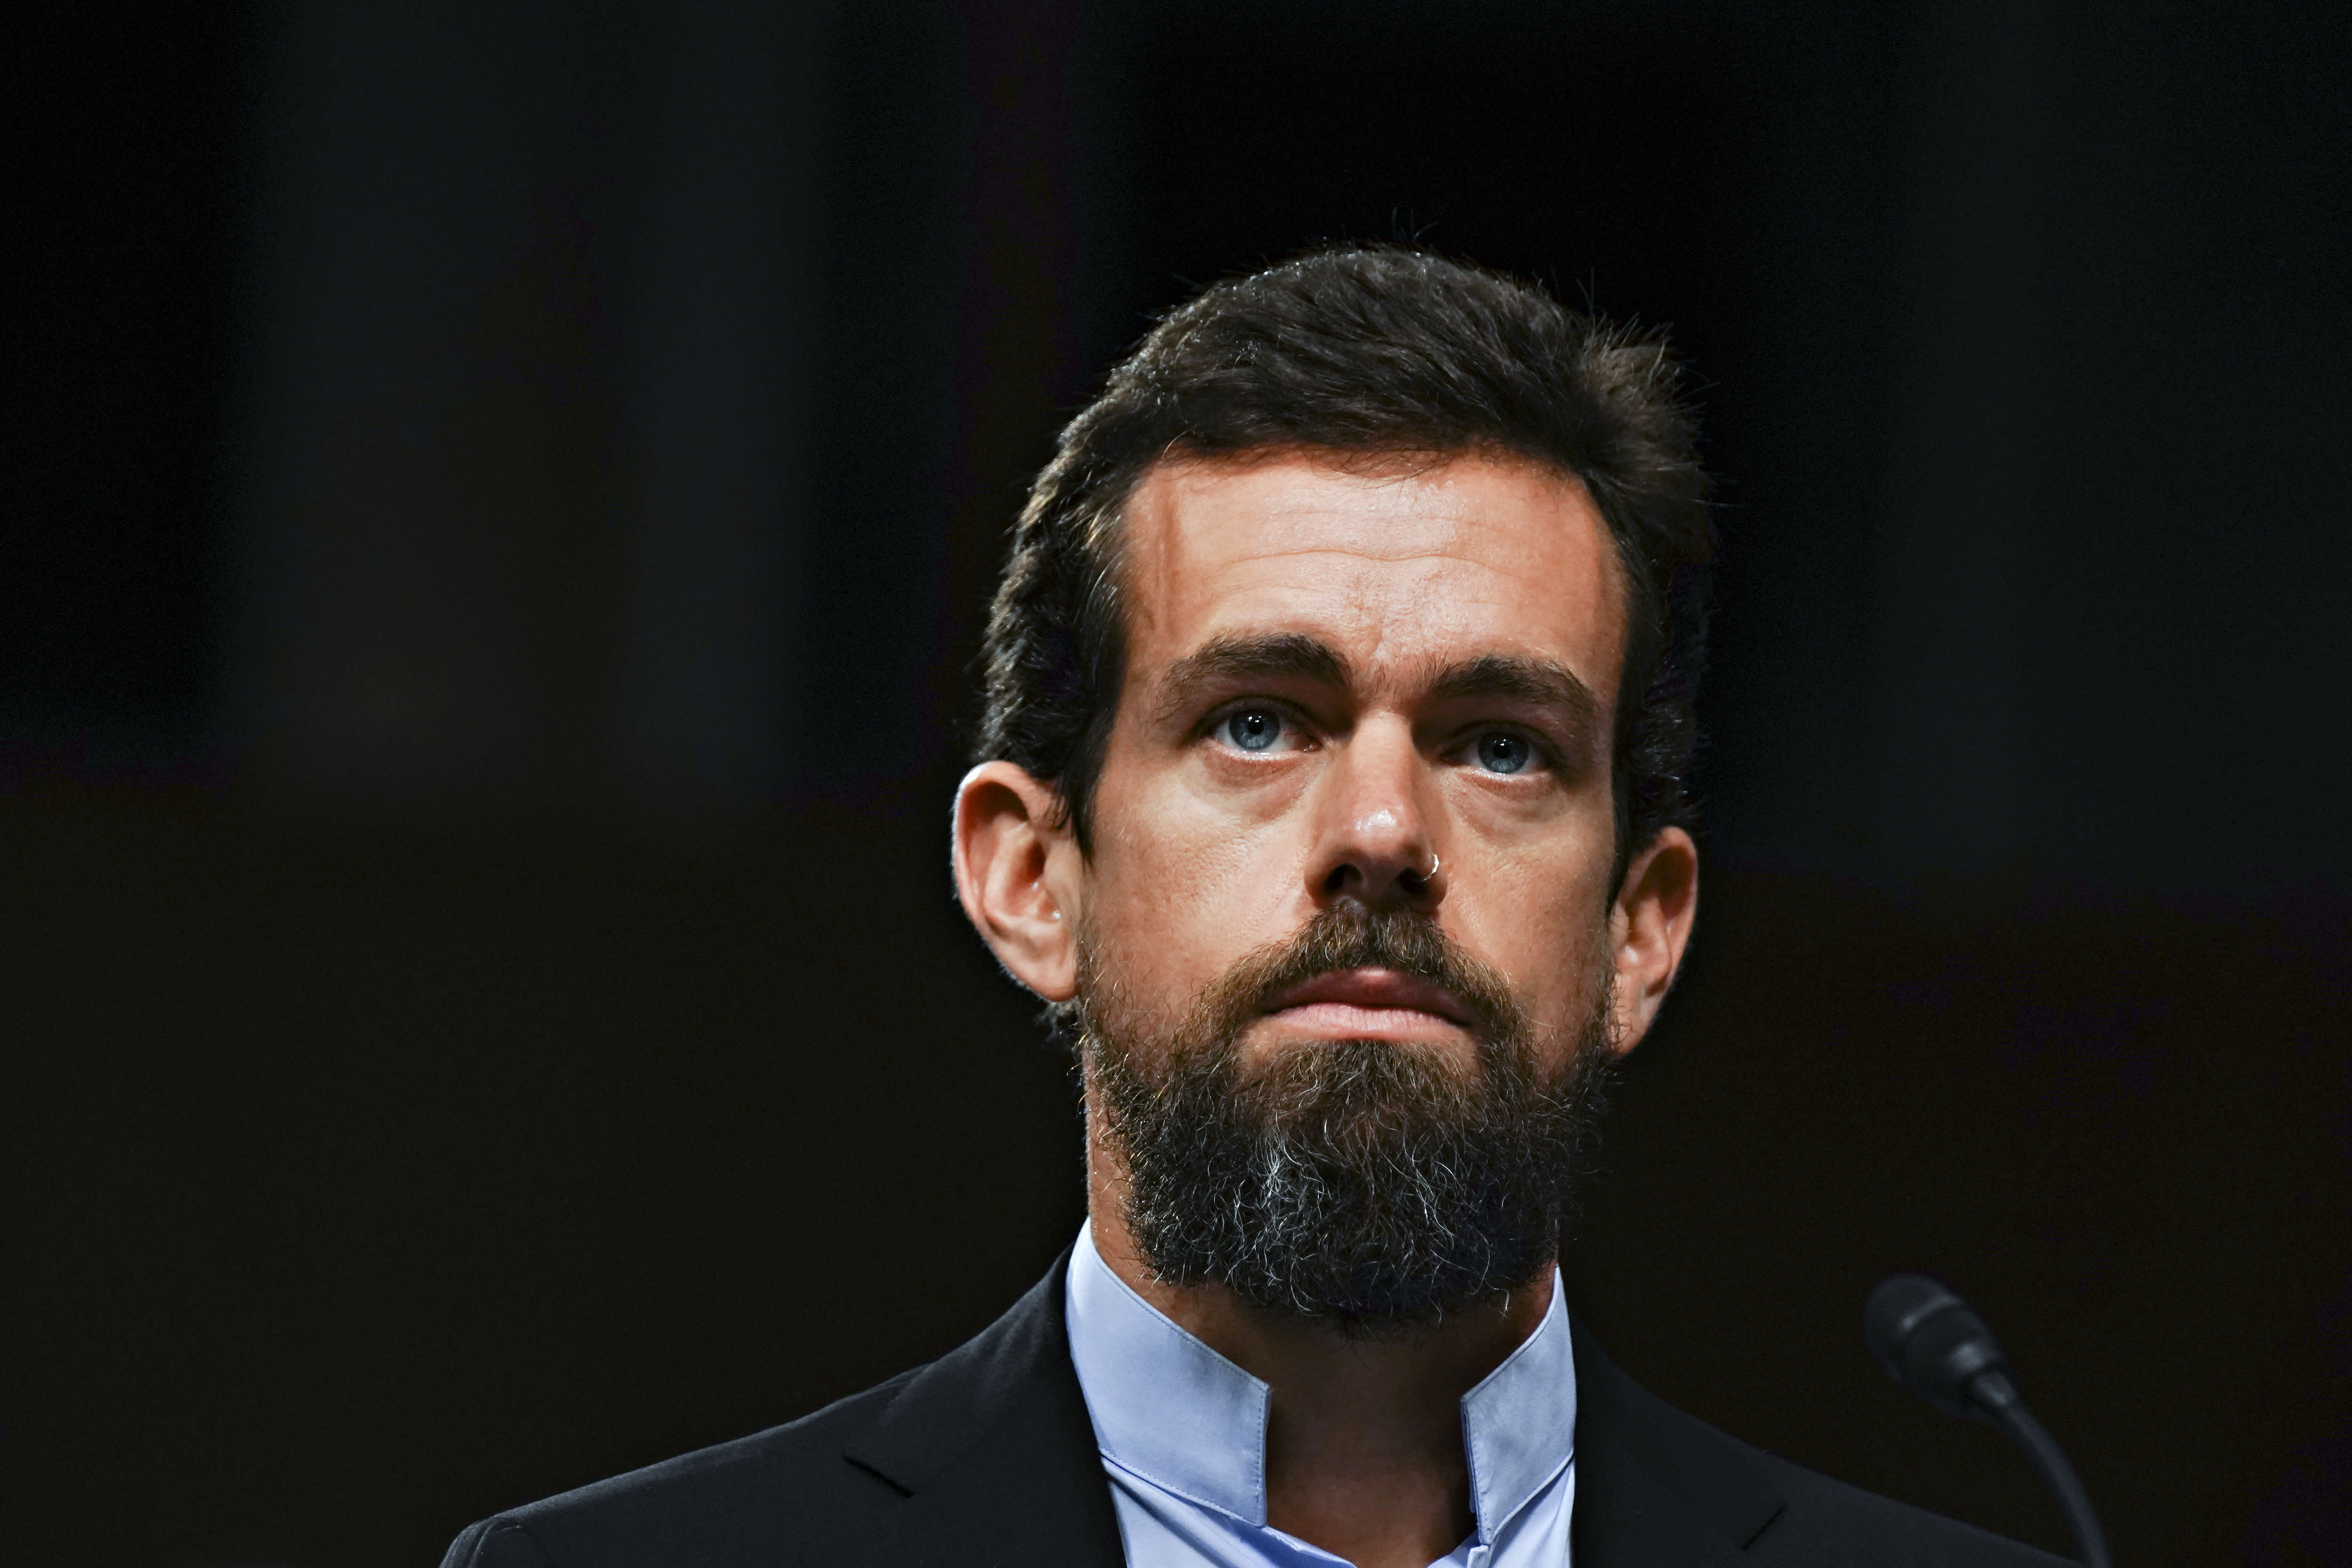 Twitter is set to report first quarter earnings before the bell as the pandemic is expected to hit ad revenue